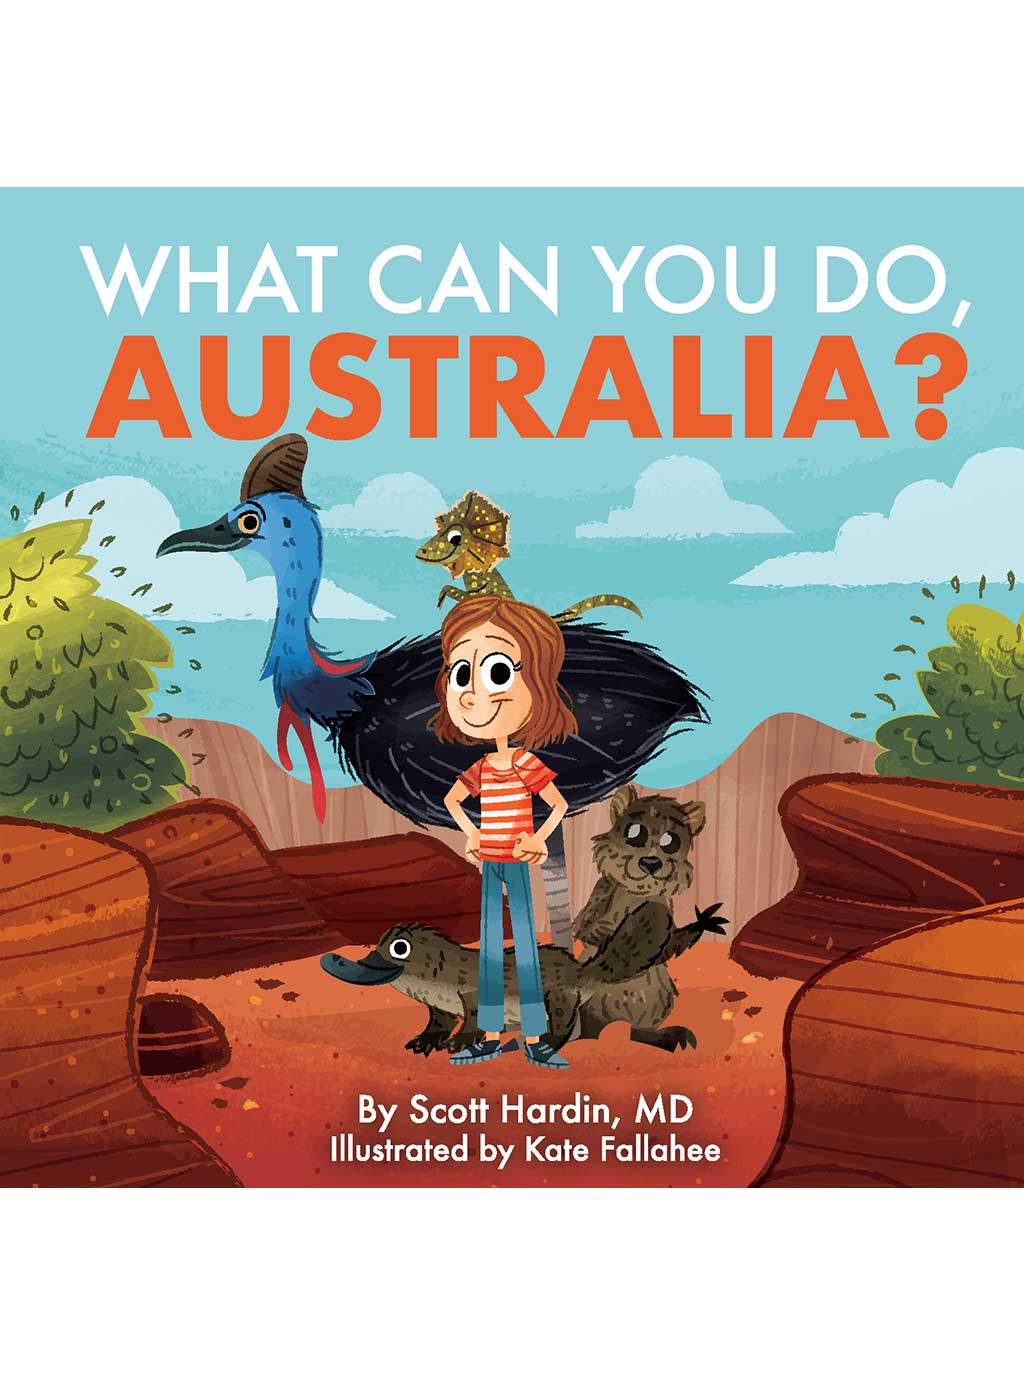 What Can You Do Australia?